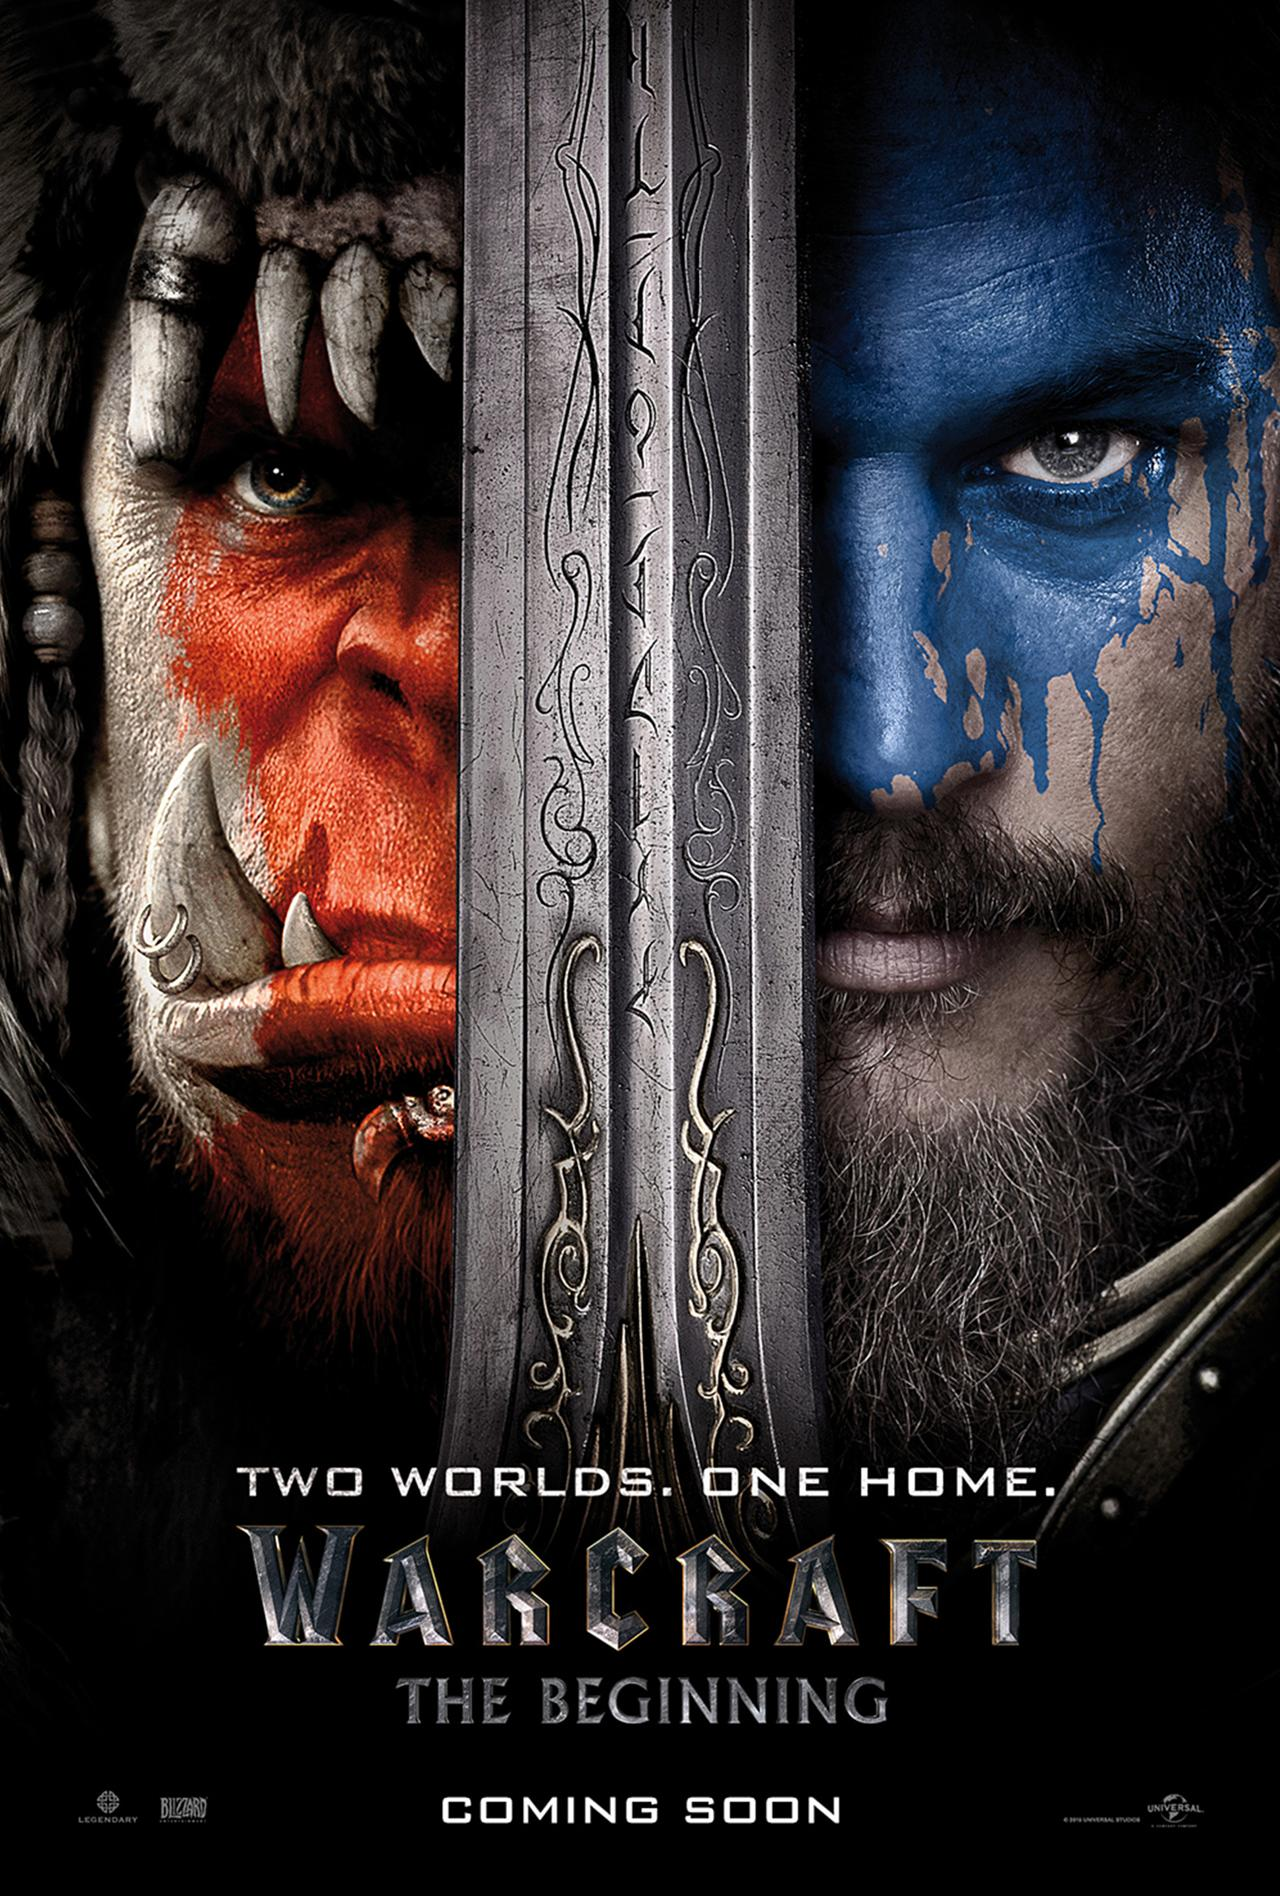 http://digitalspyuk.cdnds.net/15/45/1280x1896/gallery_movies-warcraft-the-beginning-poster.jpg